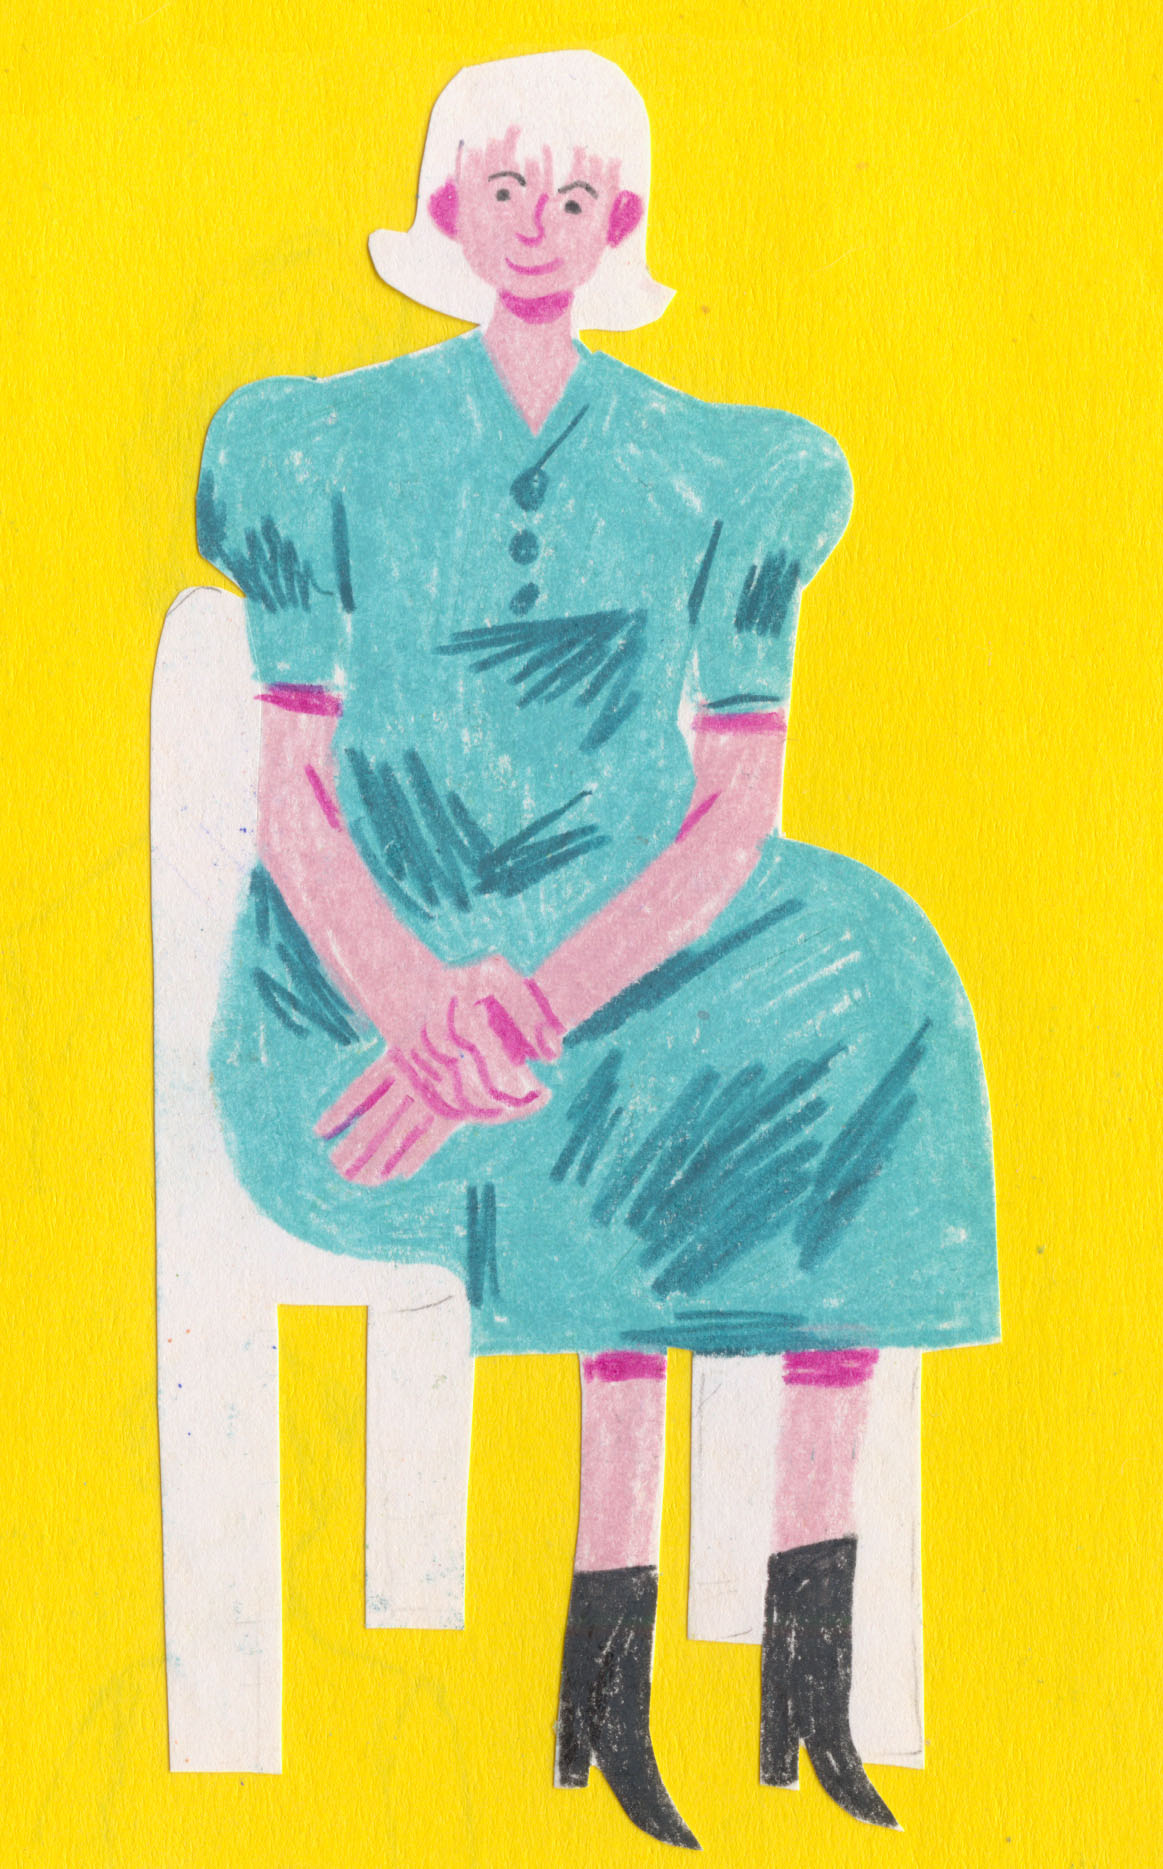 Howdy! - My name is Martha Walker and I am an Illustrator and Artist based in Houston, Texas, and a recent 2019 graduate of the Maryland Institute College of Art (MICA) with a BFA in Illustration and a concentration in Sequential Arts.I have a never ending love for creating fun, playful illustrations as well as experimenting in different styles and mediums in my work. I always look forward to new opportunities and challenges, and I hope we can work together soon!To contact, please email me atMarthaWalkerIllustration@gmail.comThank you!